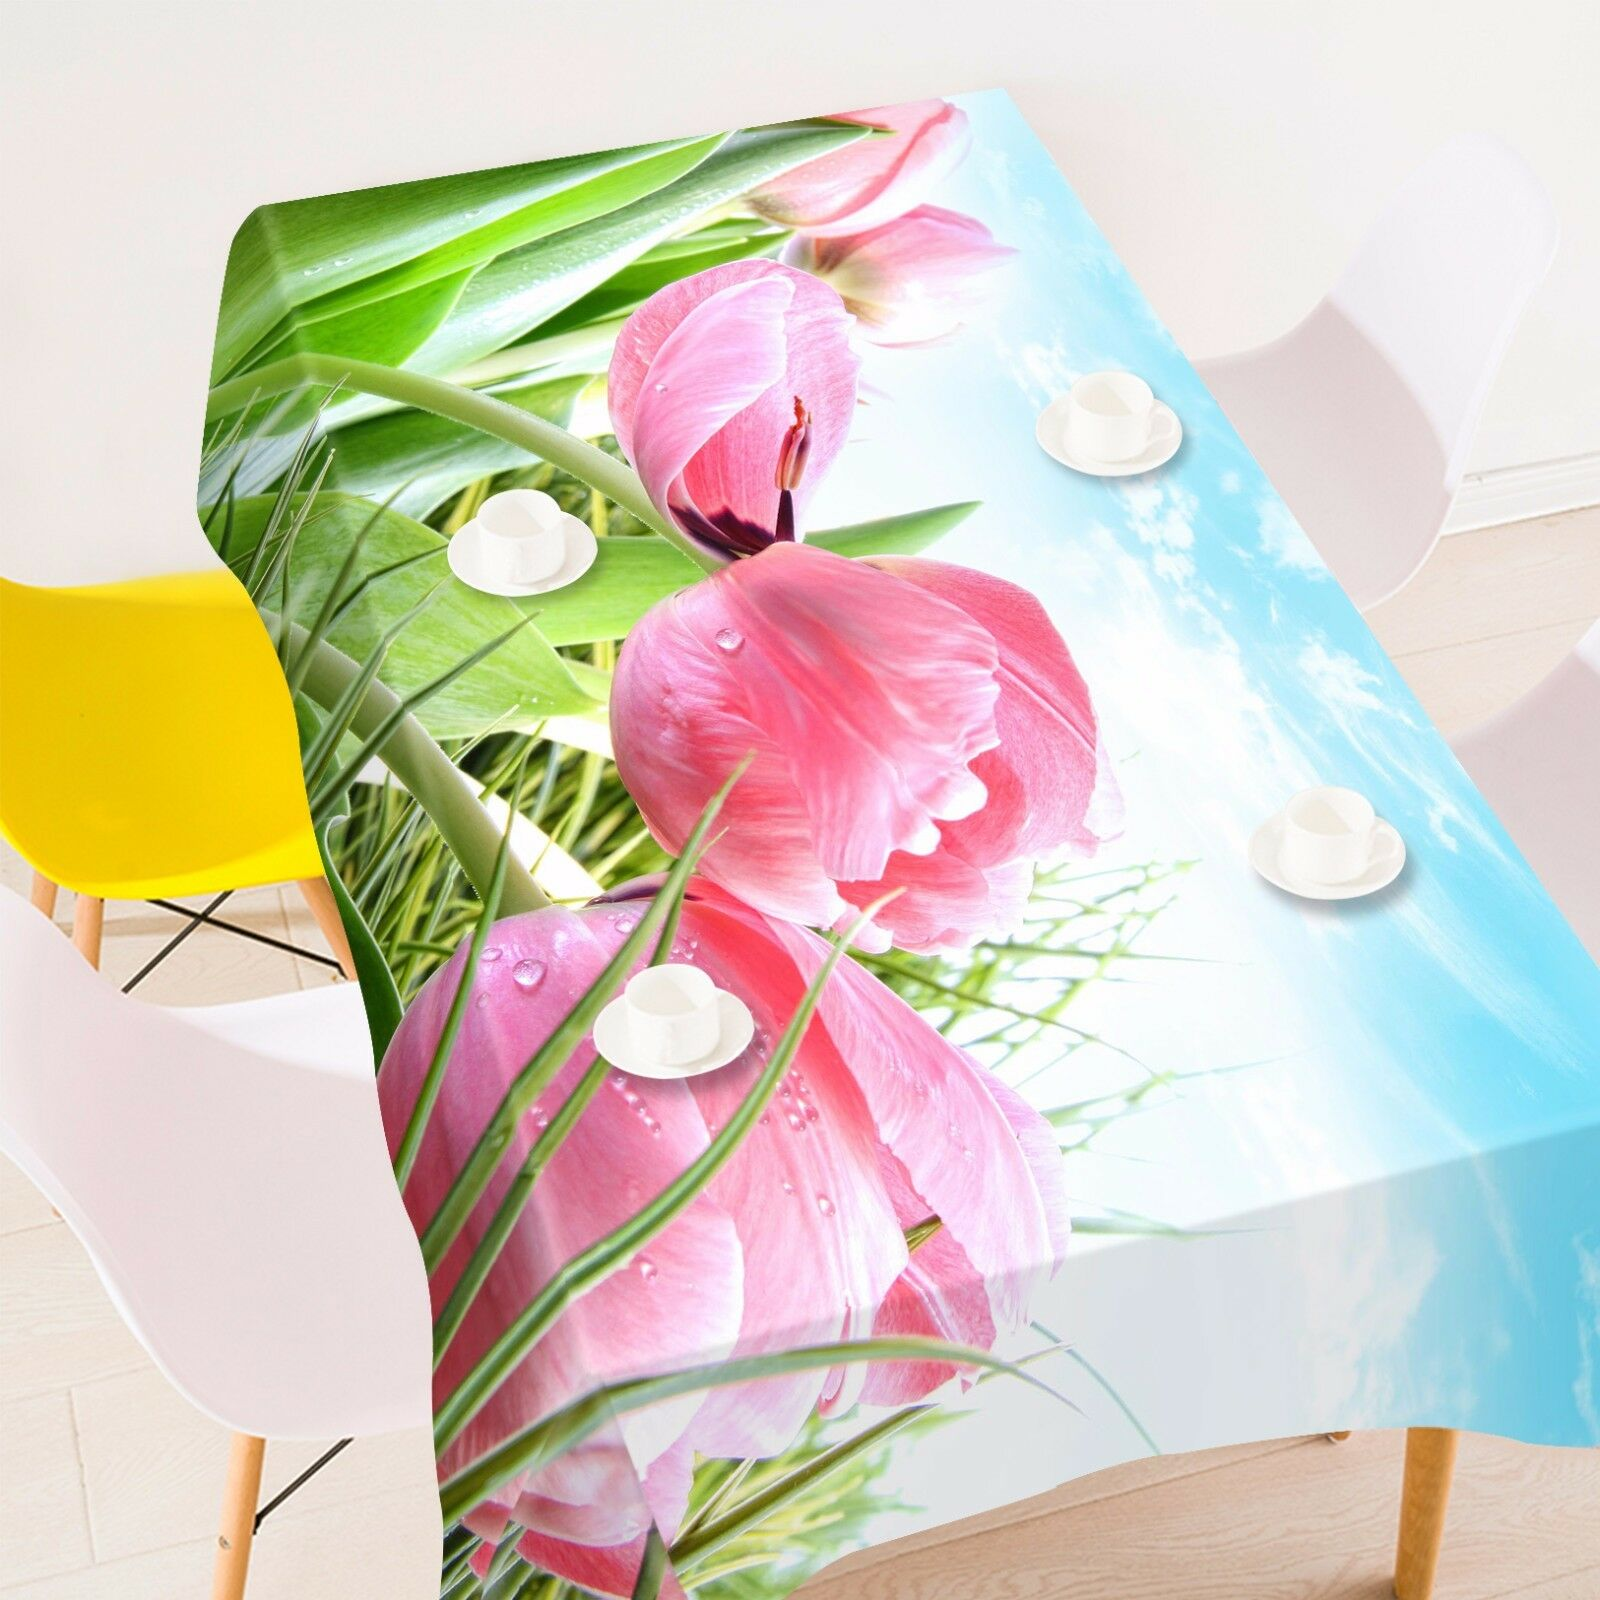 3D Rosa  4486 4486 4486 Tablecloth Table Cover Cloth Birthday Party Event AJ WALLPAPER AU 4c823e